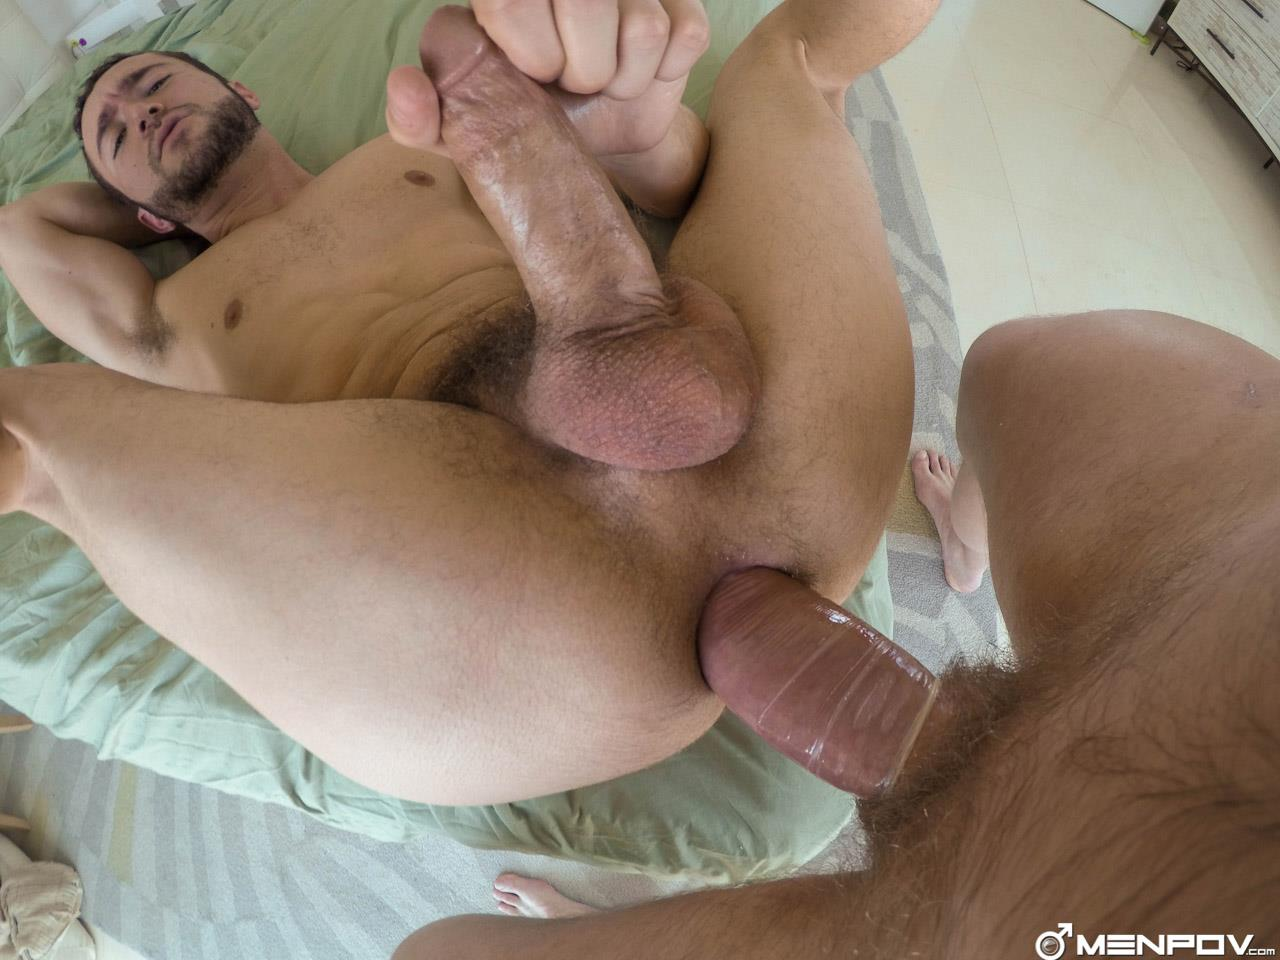 MenPOV-Colt-Rivers-and-Adam-Herst-Daddy-Fucking-His-Boy-Toy-With-A-Thick-Cock-Amateur-Gay-Porn-22 Muscular Daddy Fucking His Boy Toy With His Thick Hard Cock